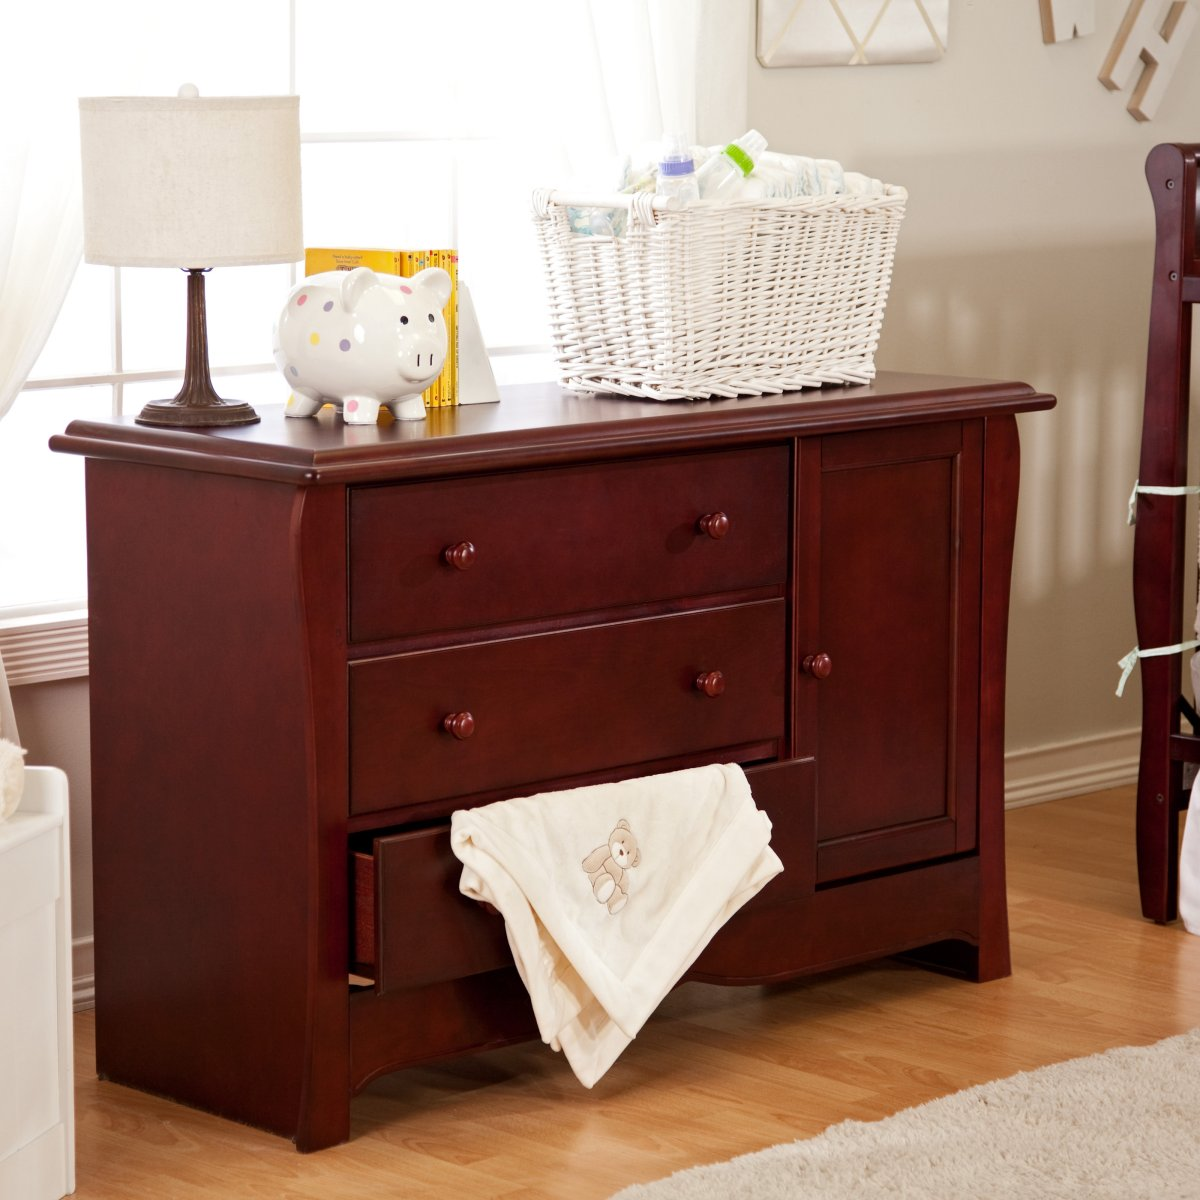 Image of: Combo Cherry Wood Changing Table